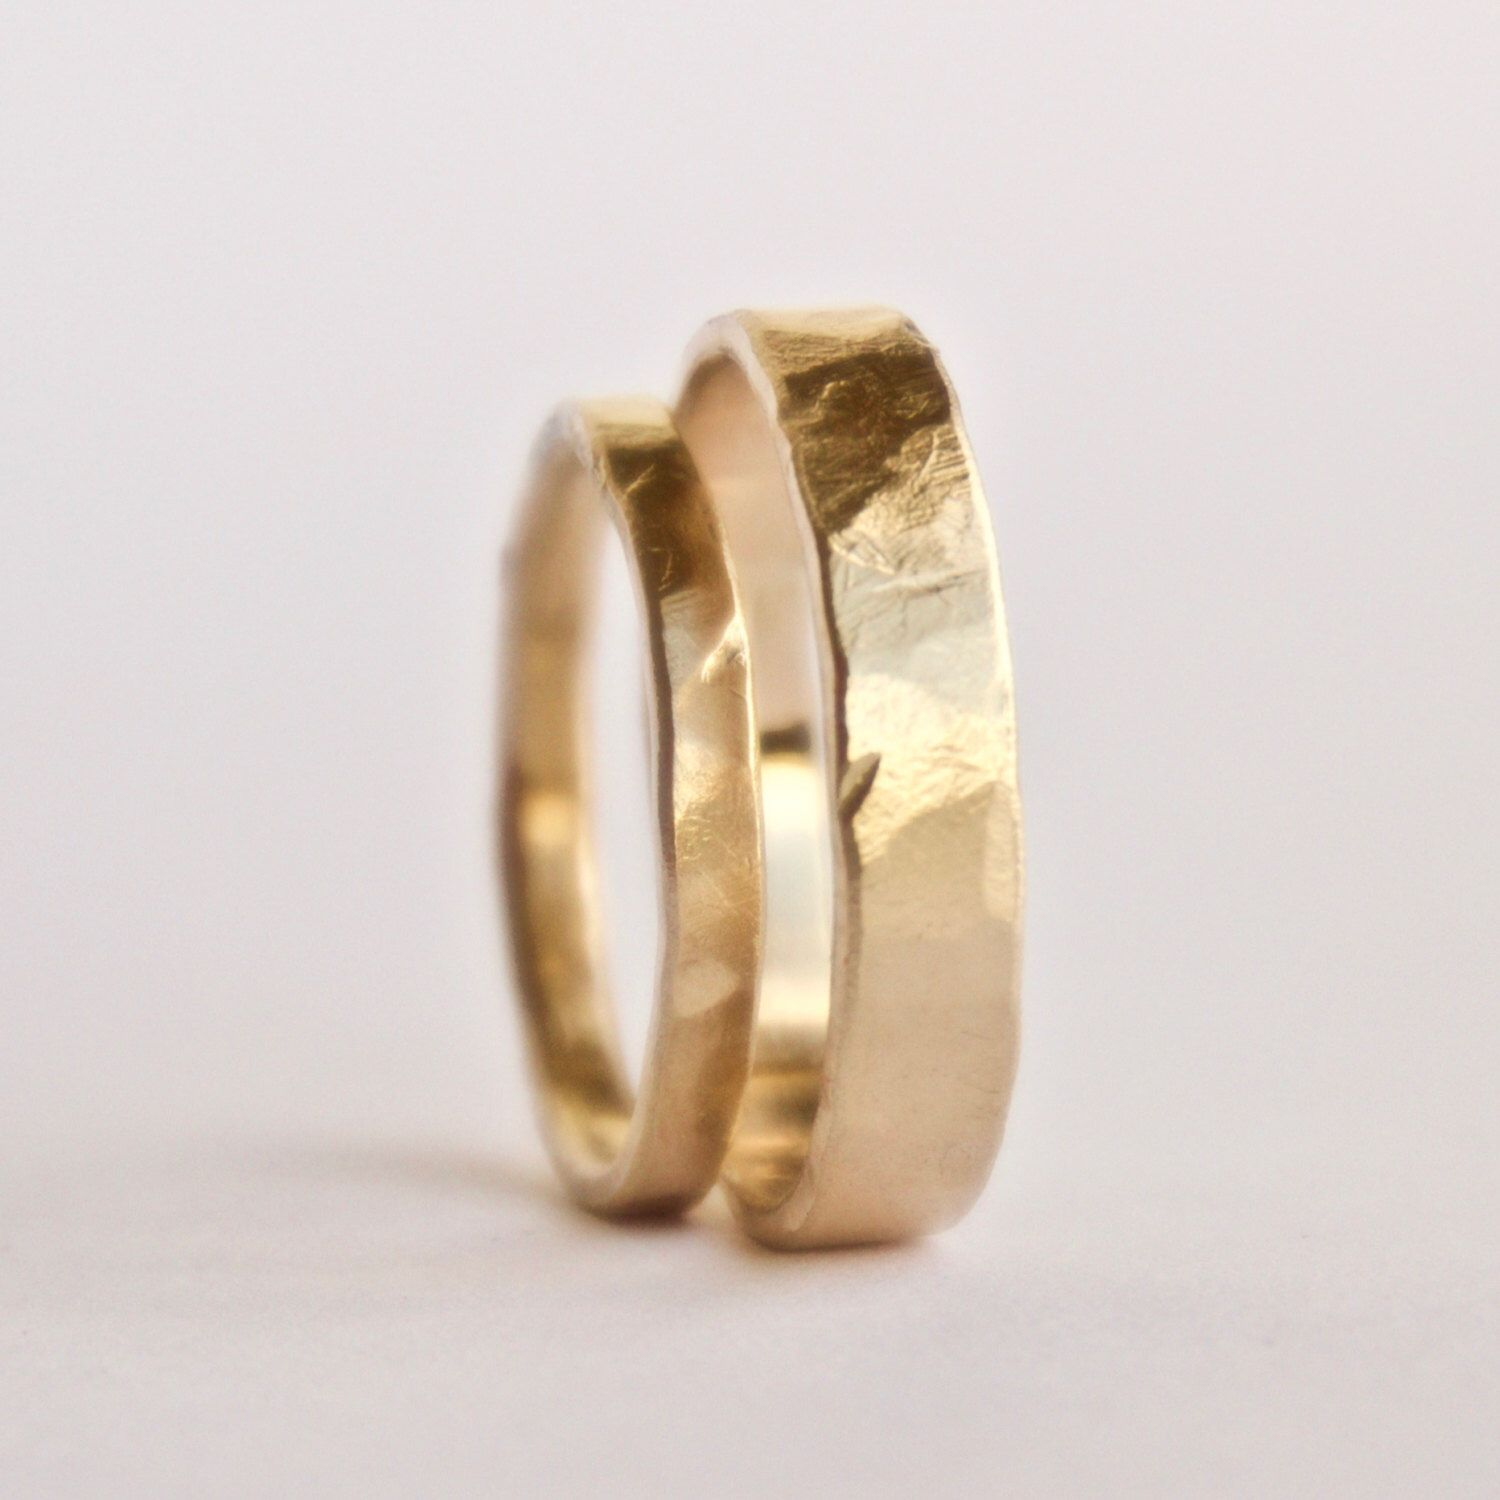 etsy mens wedding bands Wedding Ring Set Two Hammered Gold Rings Rustic Textured Rings 18 Carat Gold Wedding Band Men s Women s Couples Unique